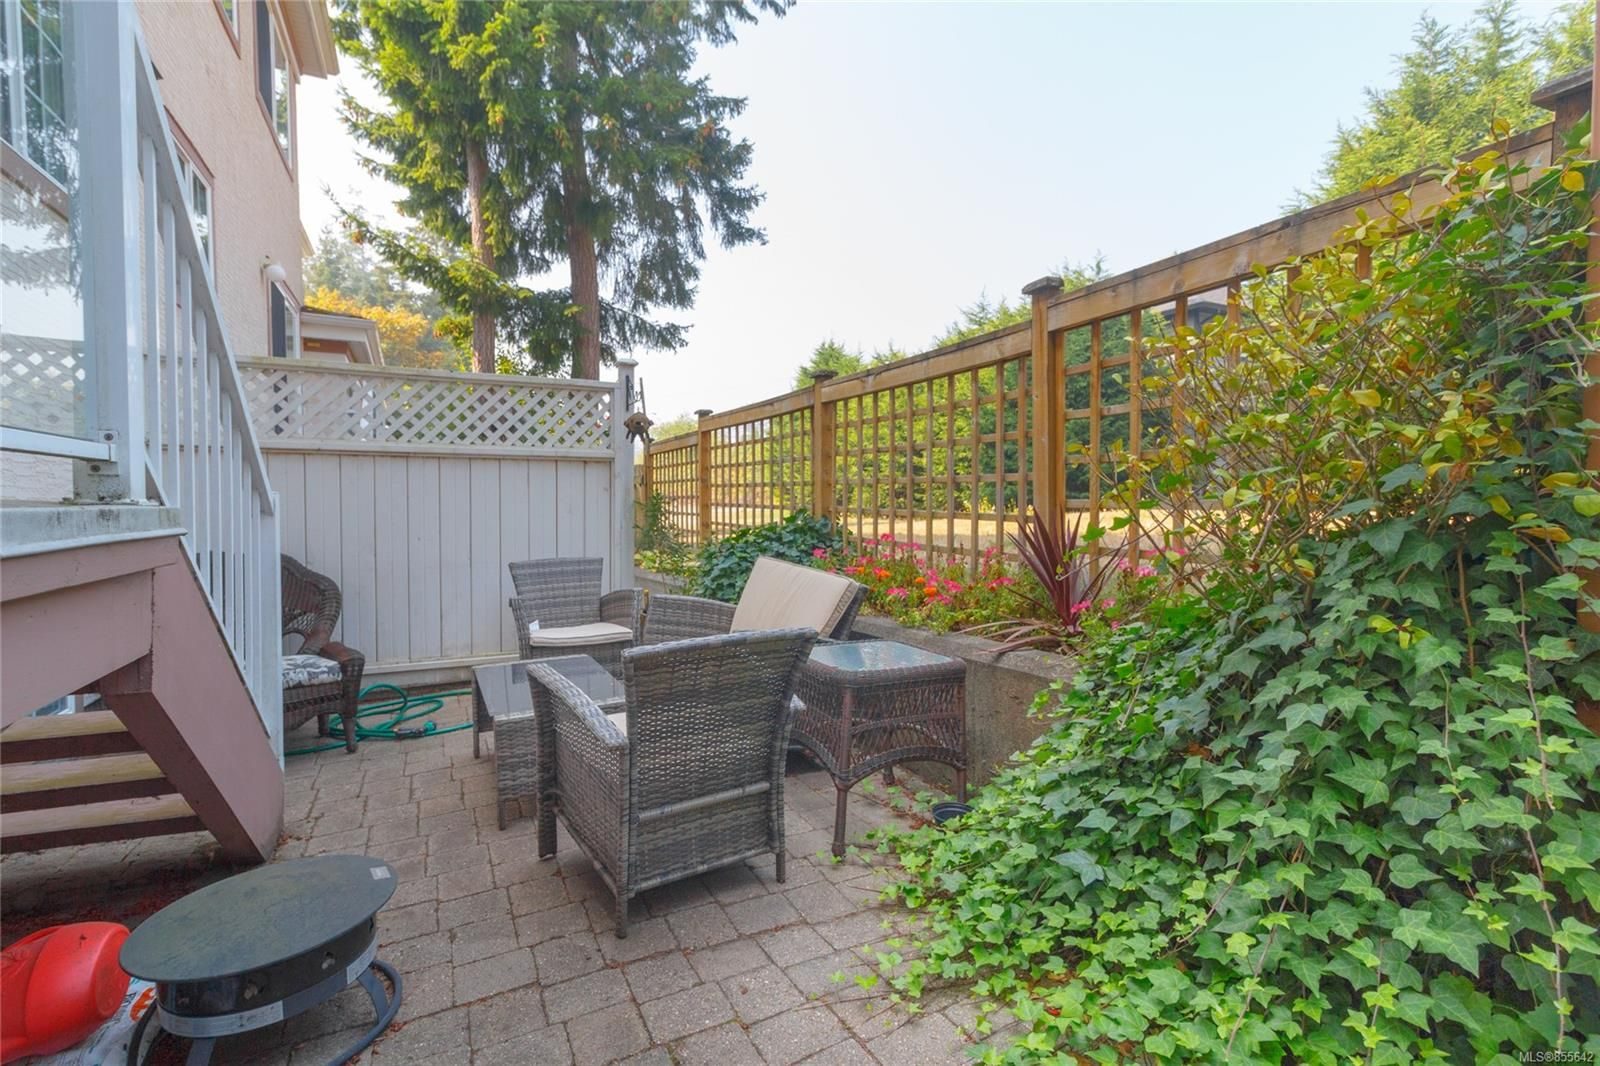 Photo 25: Photos: 52 14 Erskine Lane in : VR Hospital Row/Townhouse for sale (View Royal)  : MLS®# 855642